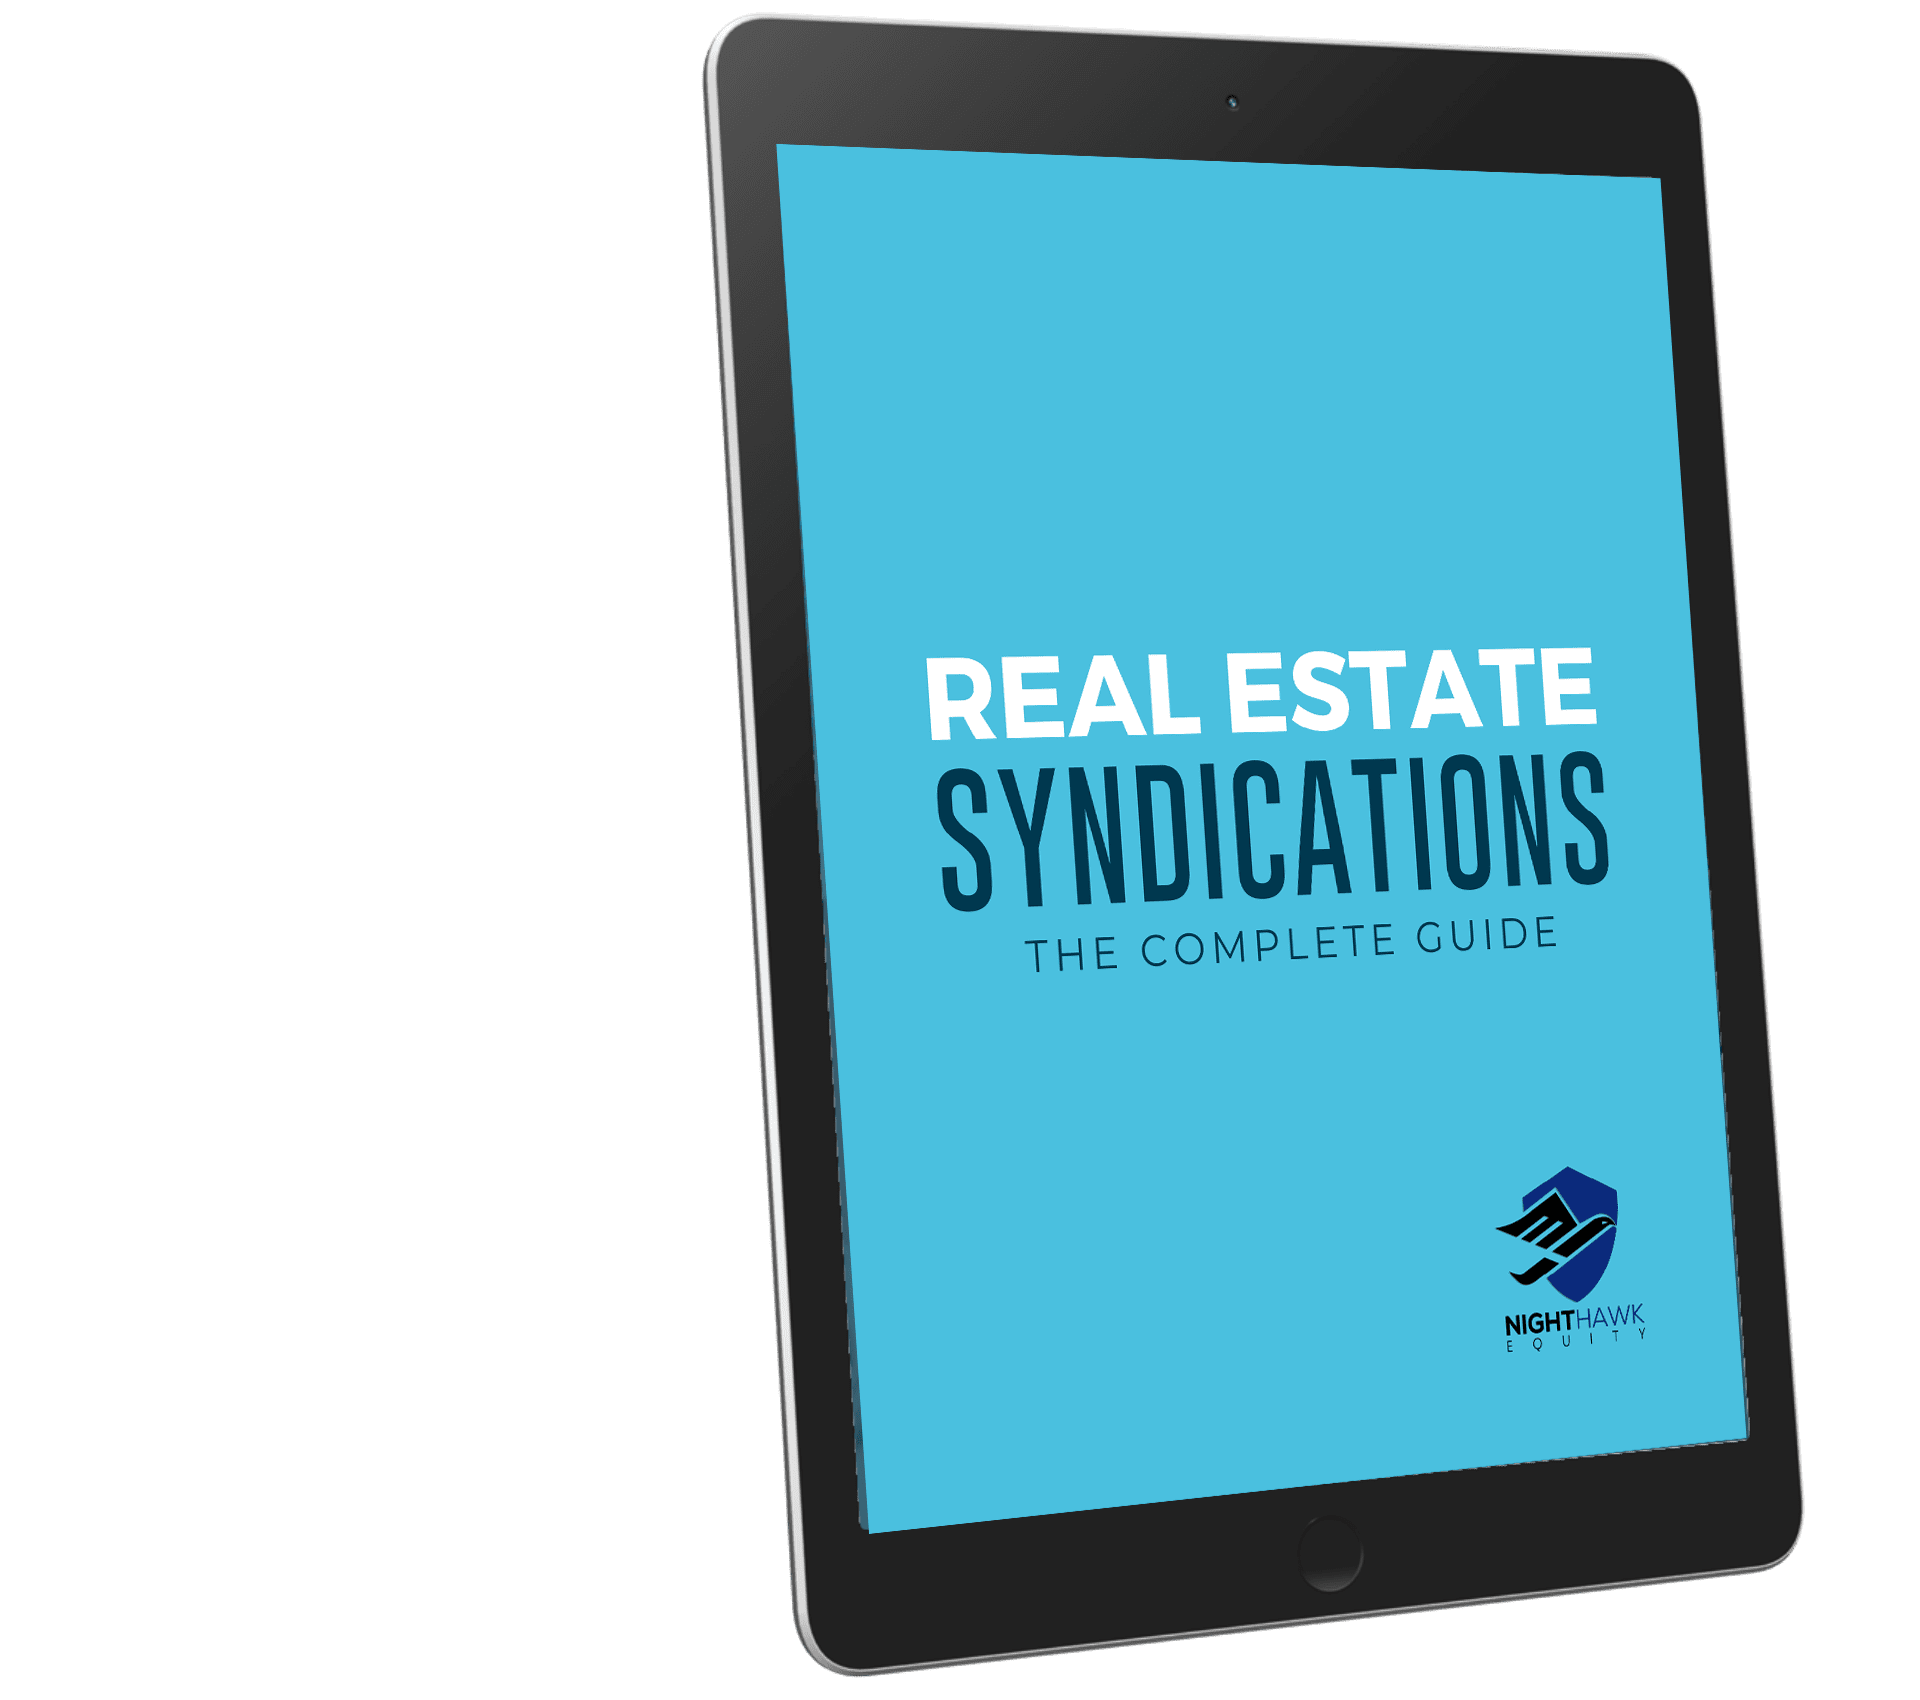 Complete Guide to Real Estate Syndications